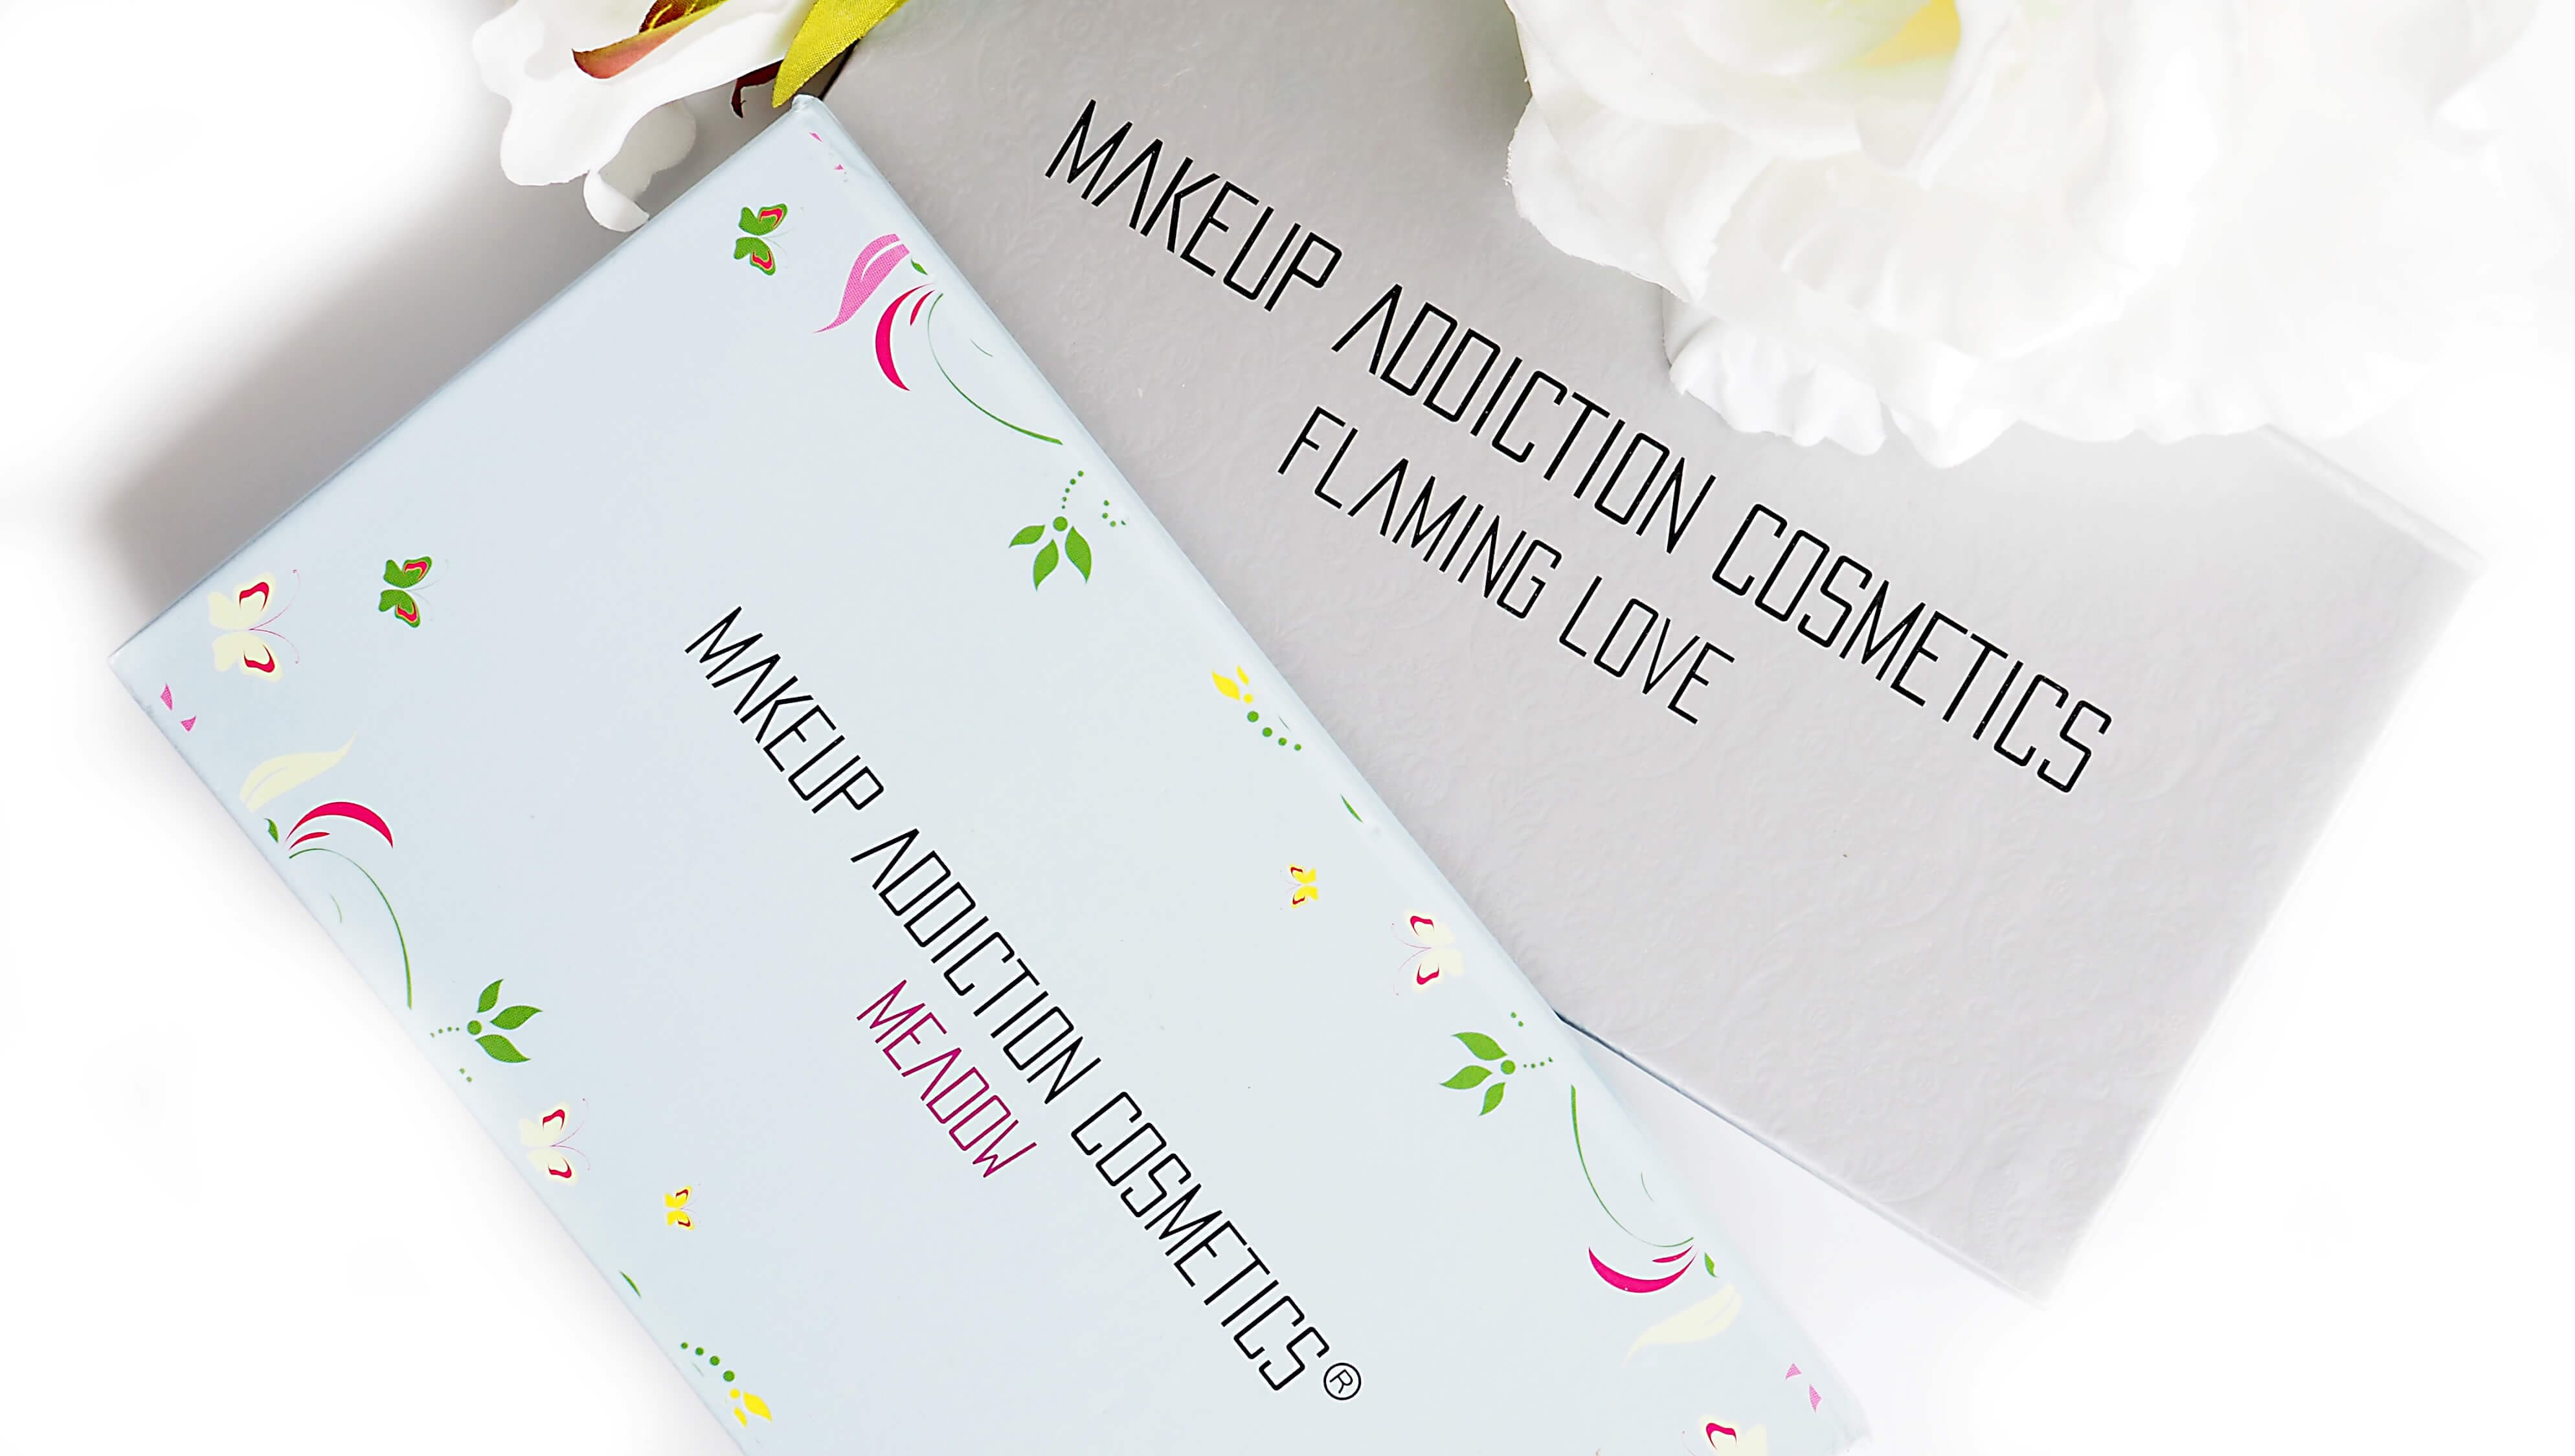 MAKEUP ADDICTION FLAMING LOVE vs MEADOW